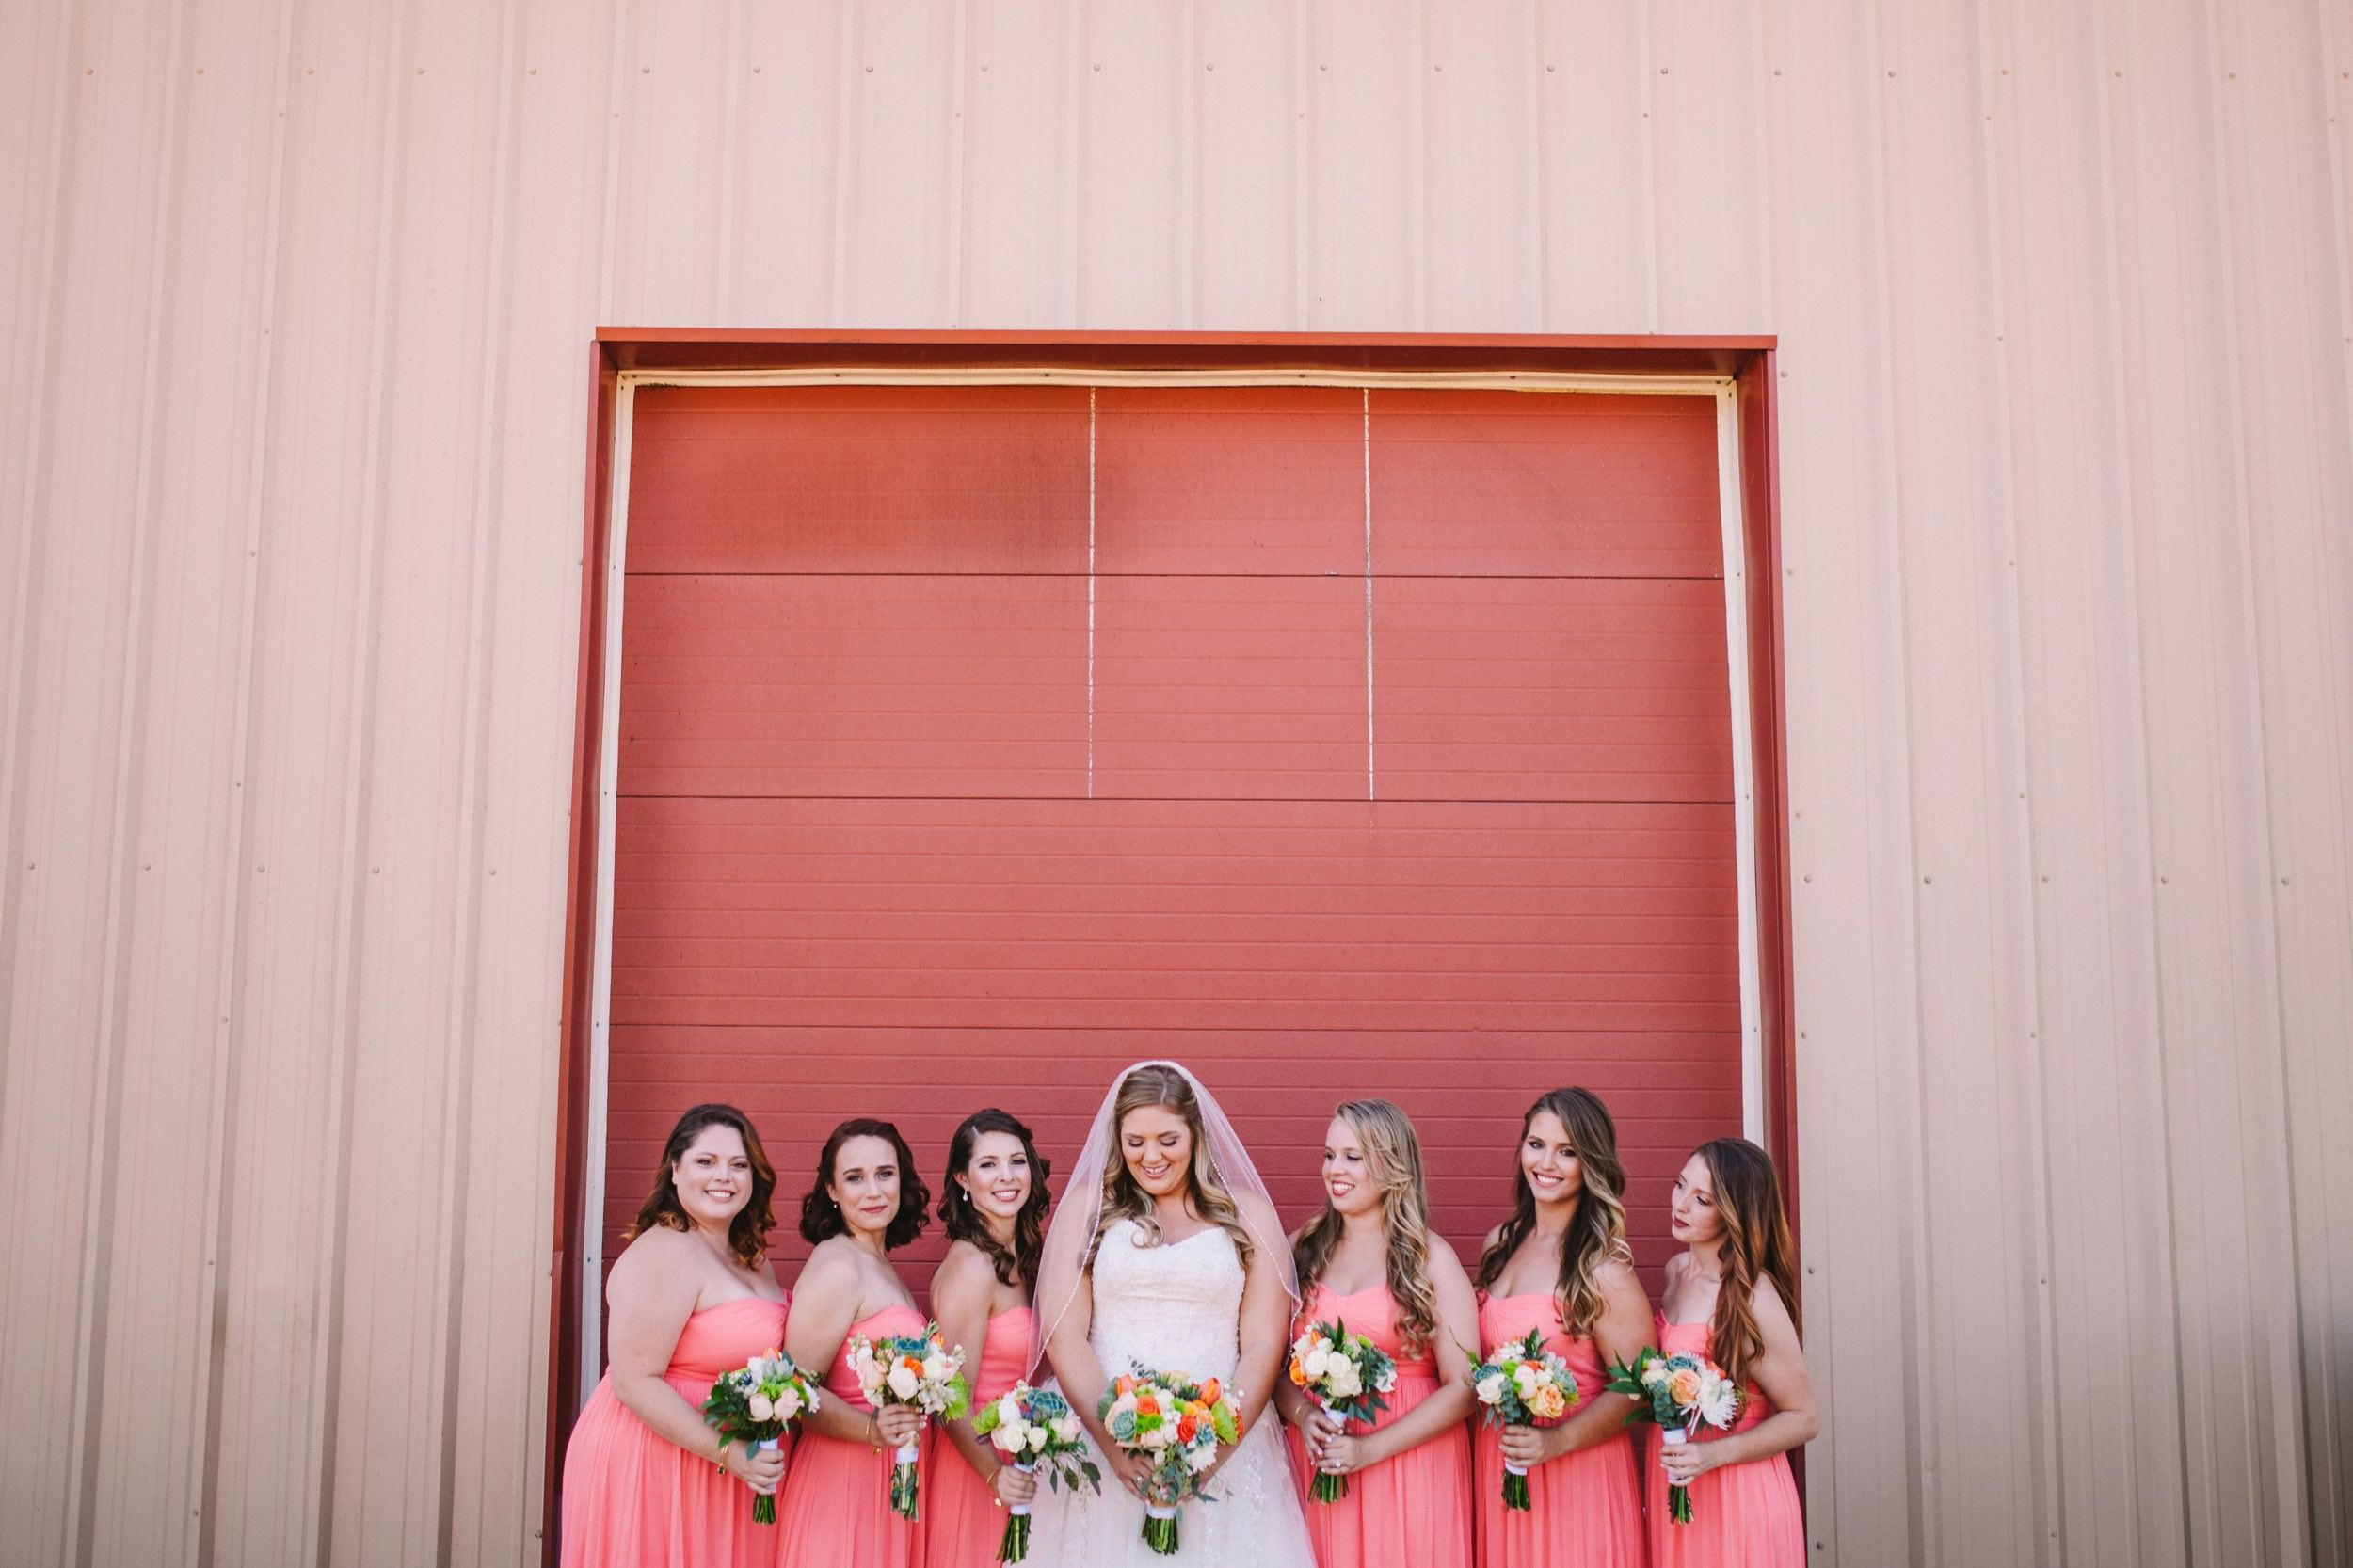 Colorful Pink and Orange Wedding - Bridesmaids in Pink Group Shot, Standing in front of Red/Pink Door